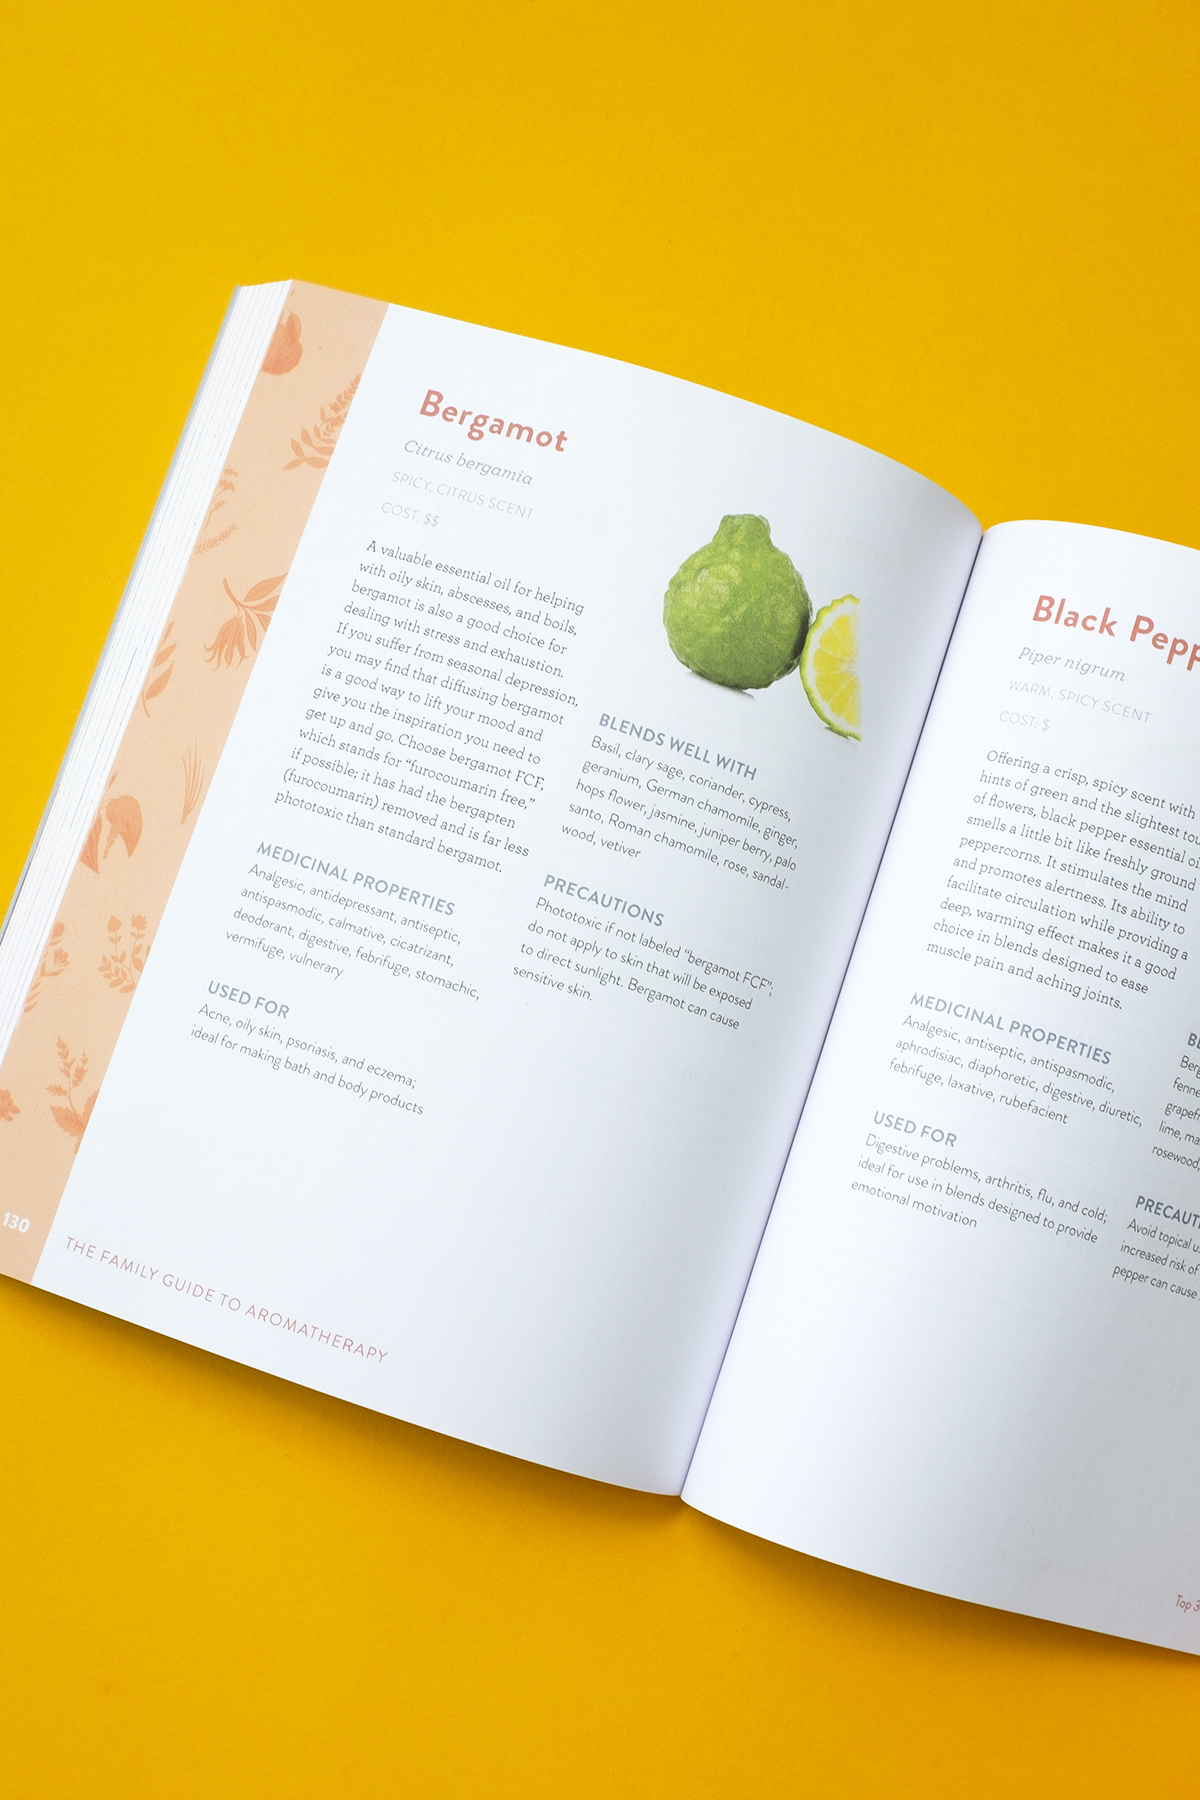 An Aromatherapy Guide for Infants to Elders   Herbal Academy   Aromatherapist Erika Galentin shares how to use essential oils safely and effectively through all stages of life in her new aromatherapy guide book!